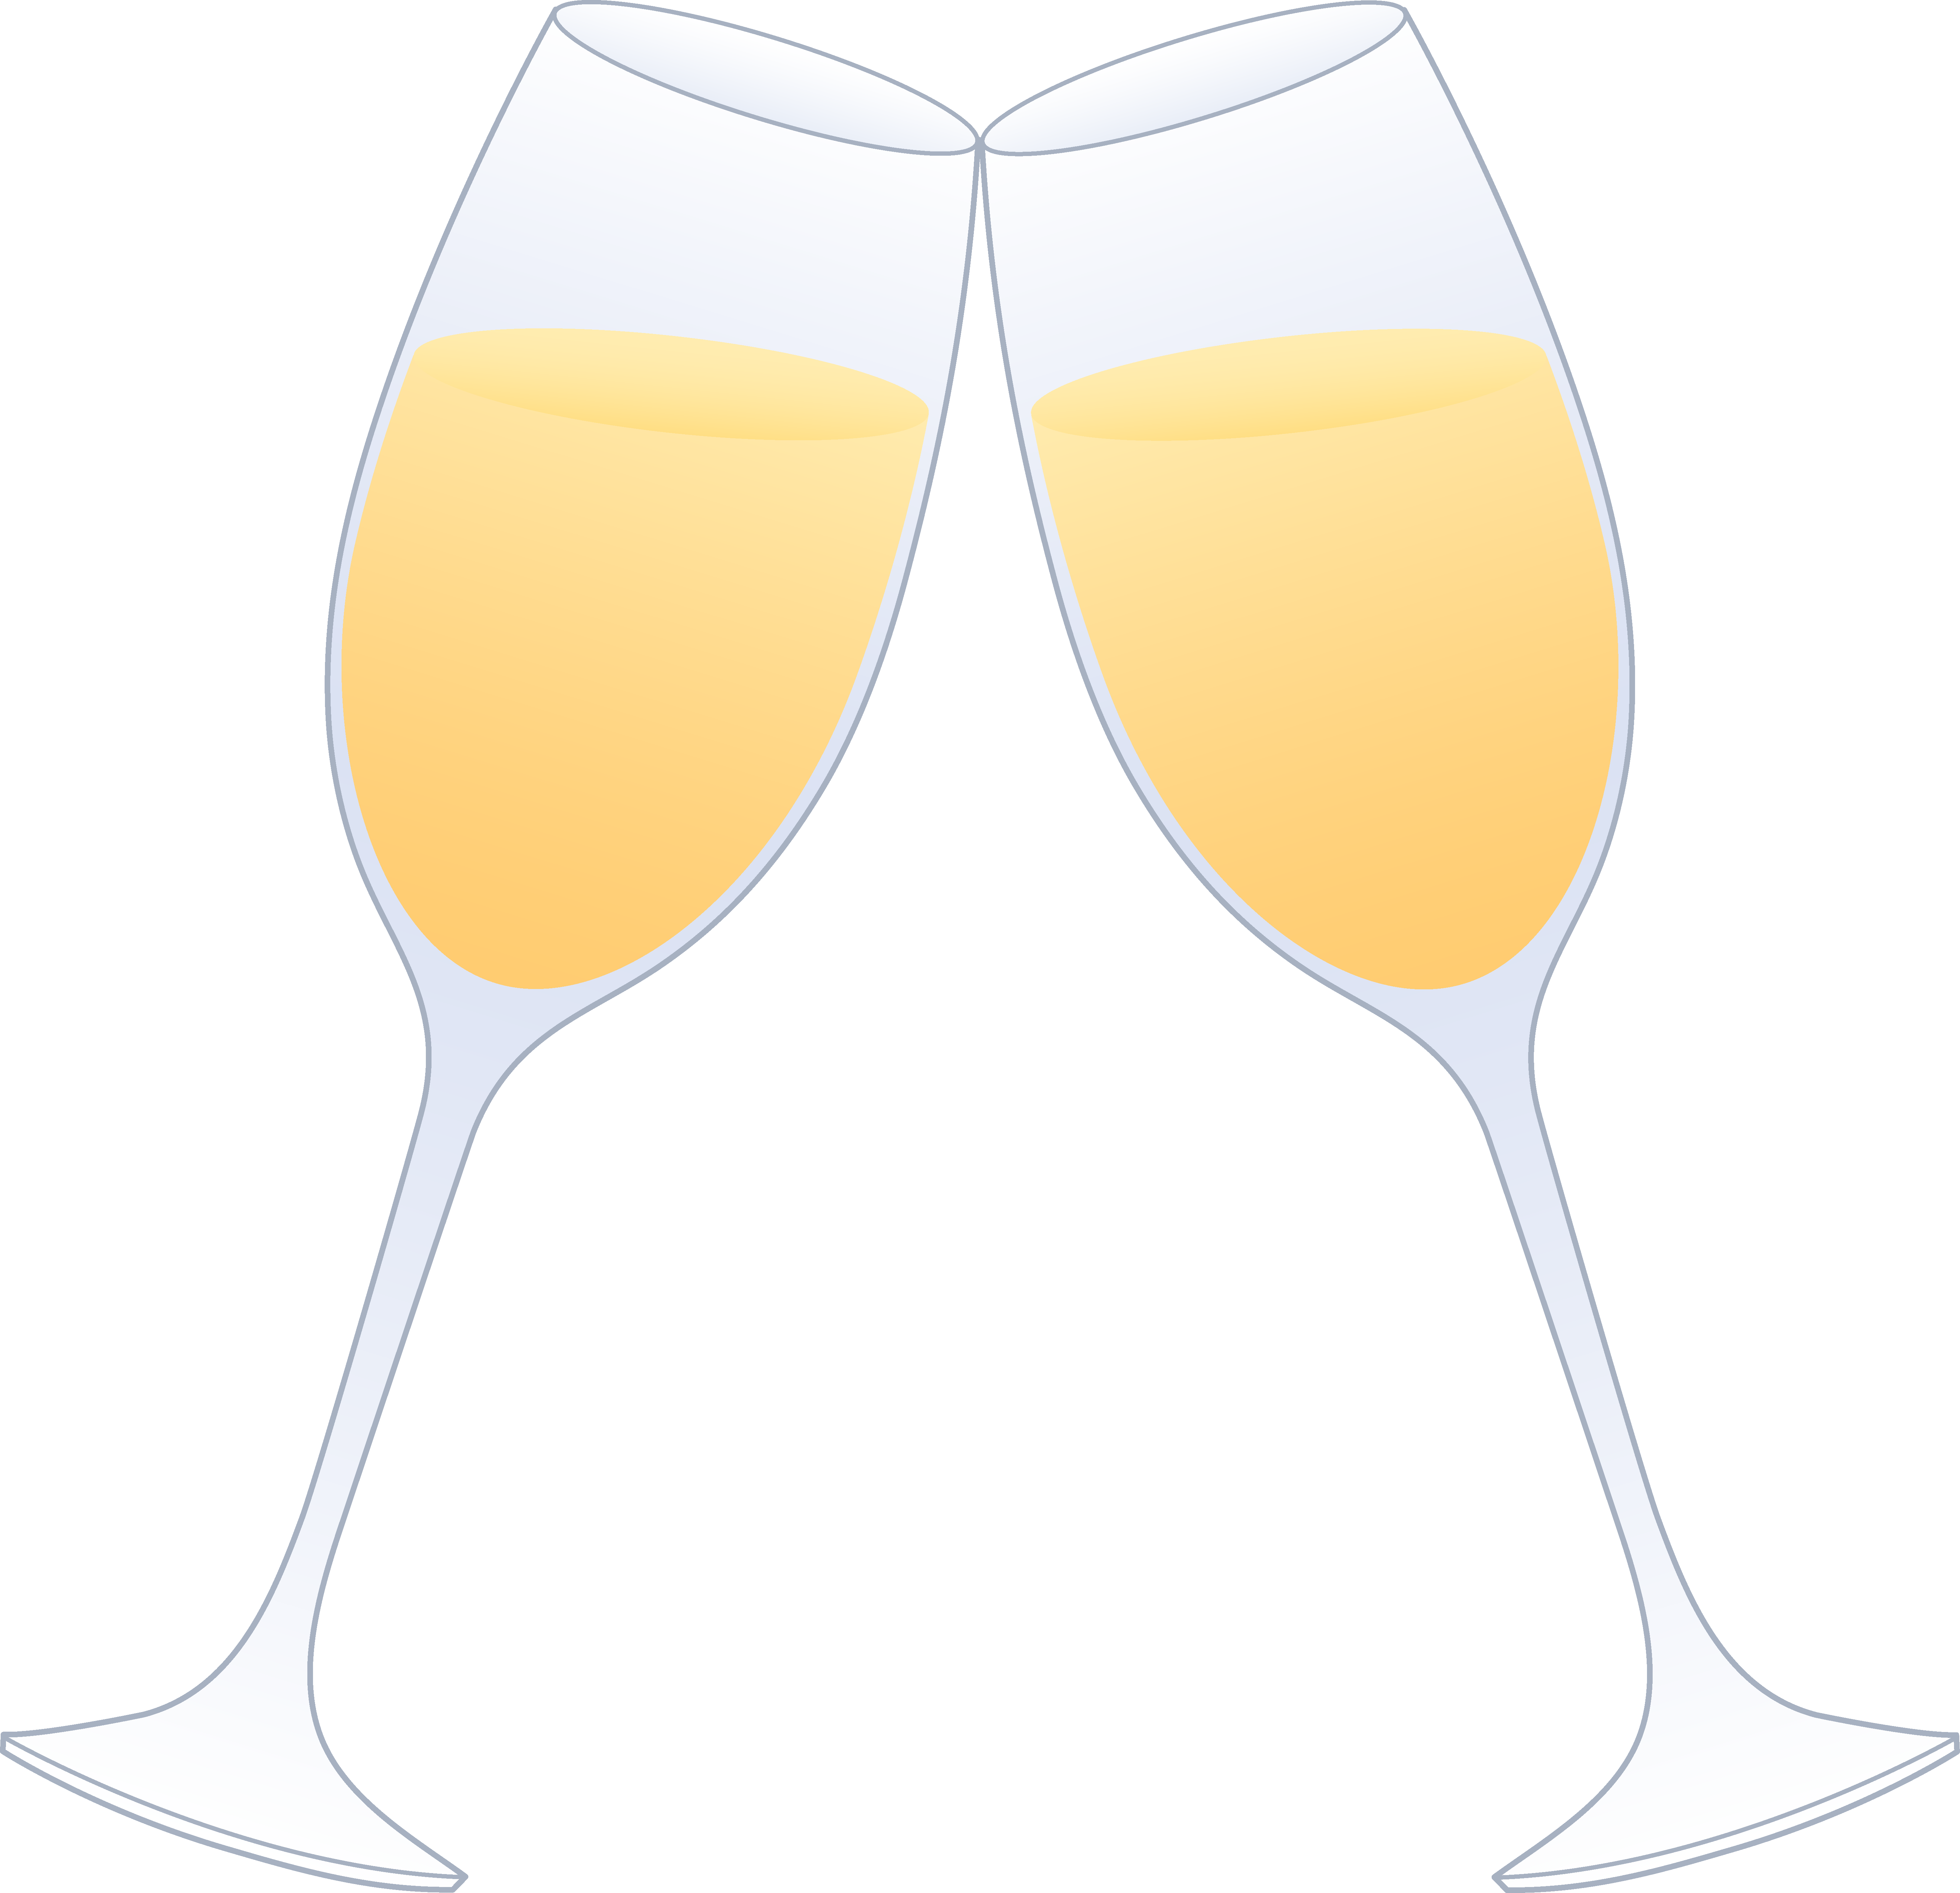 Free Champagne Glass Images, Download Free Clip Art, Free.